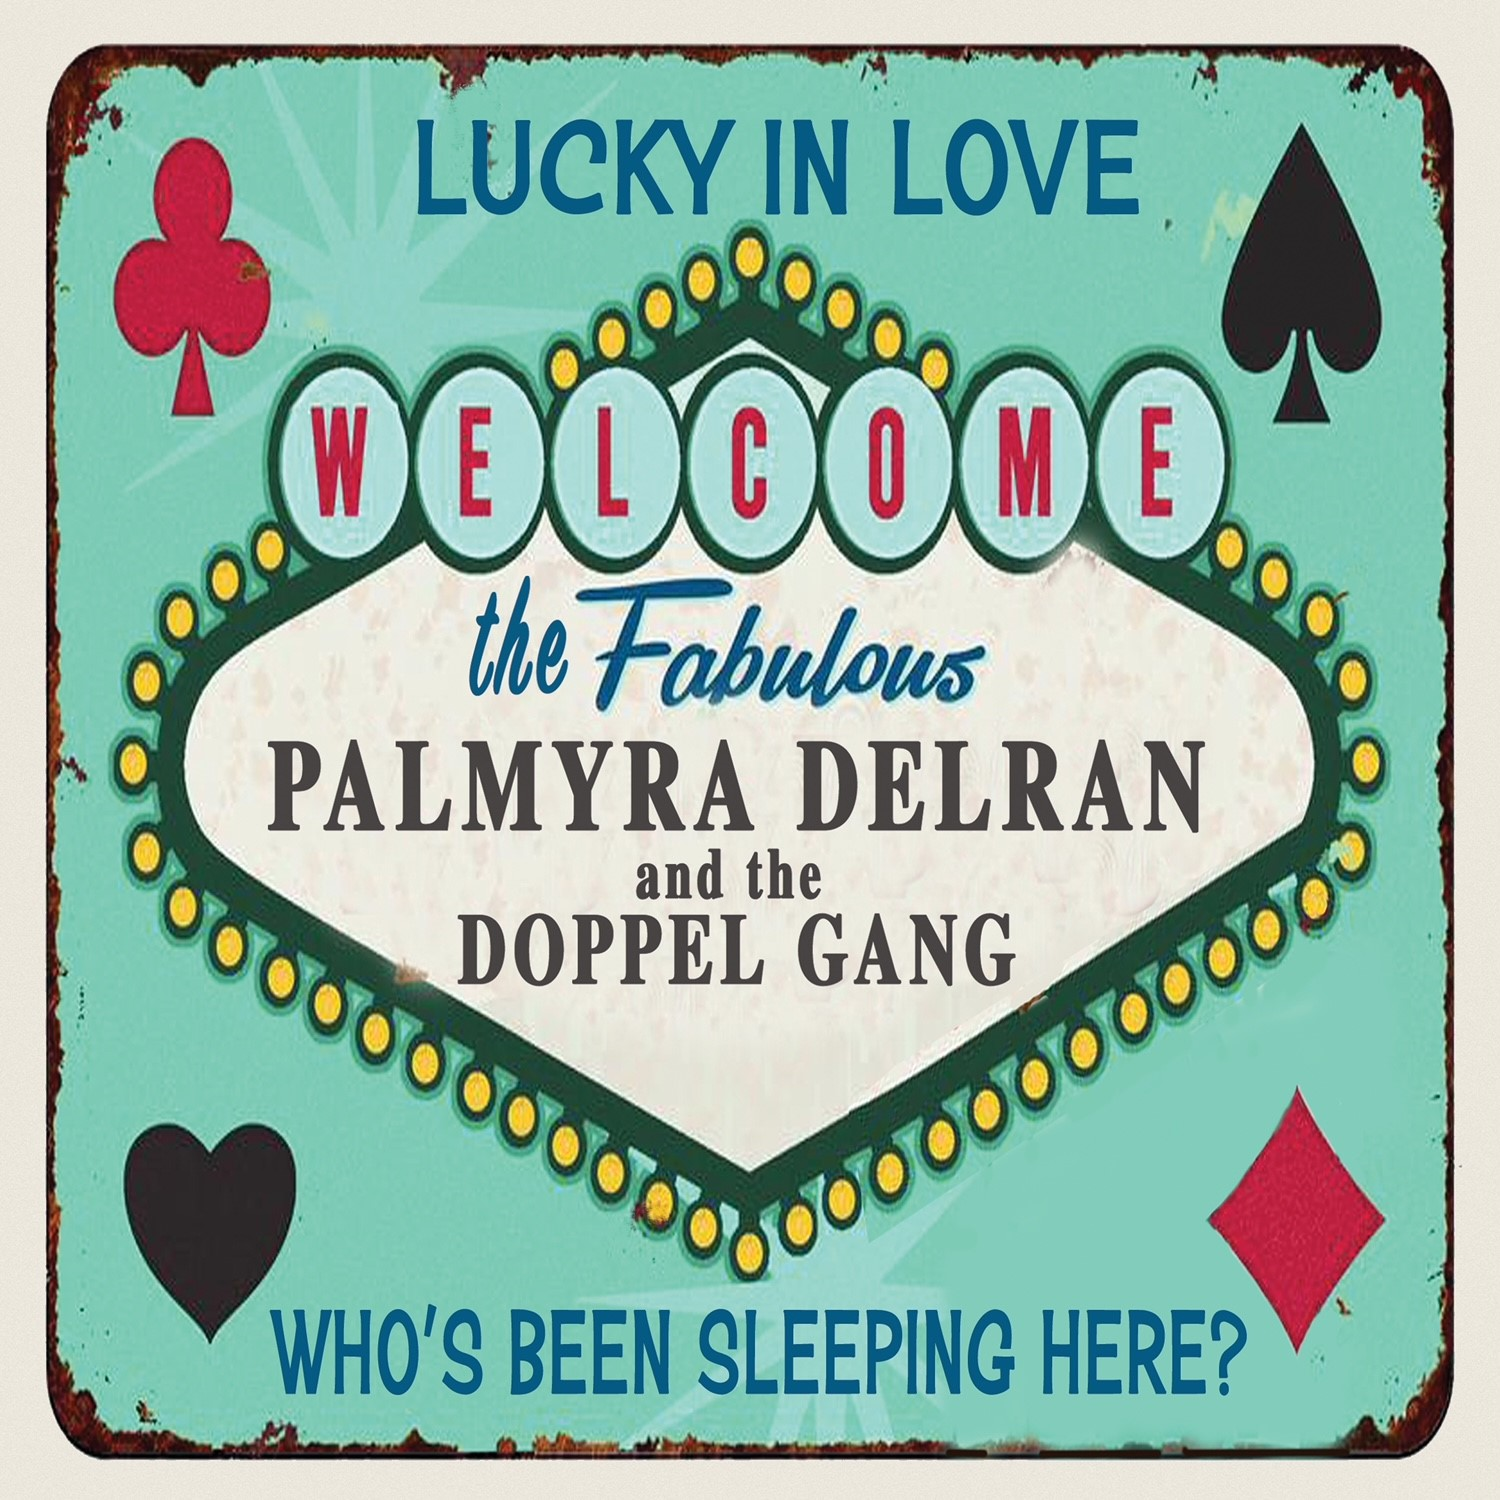 Palmyra Delran & The Doppel Gang Release New Singles